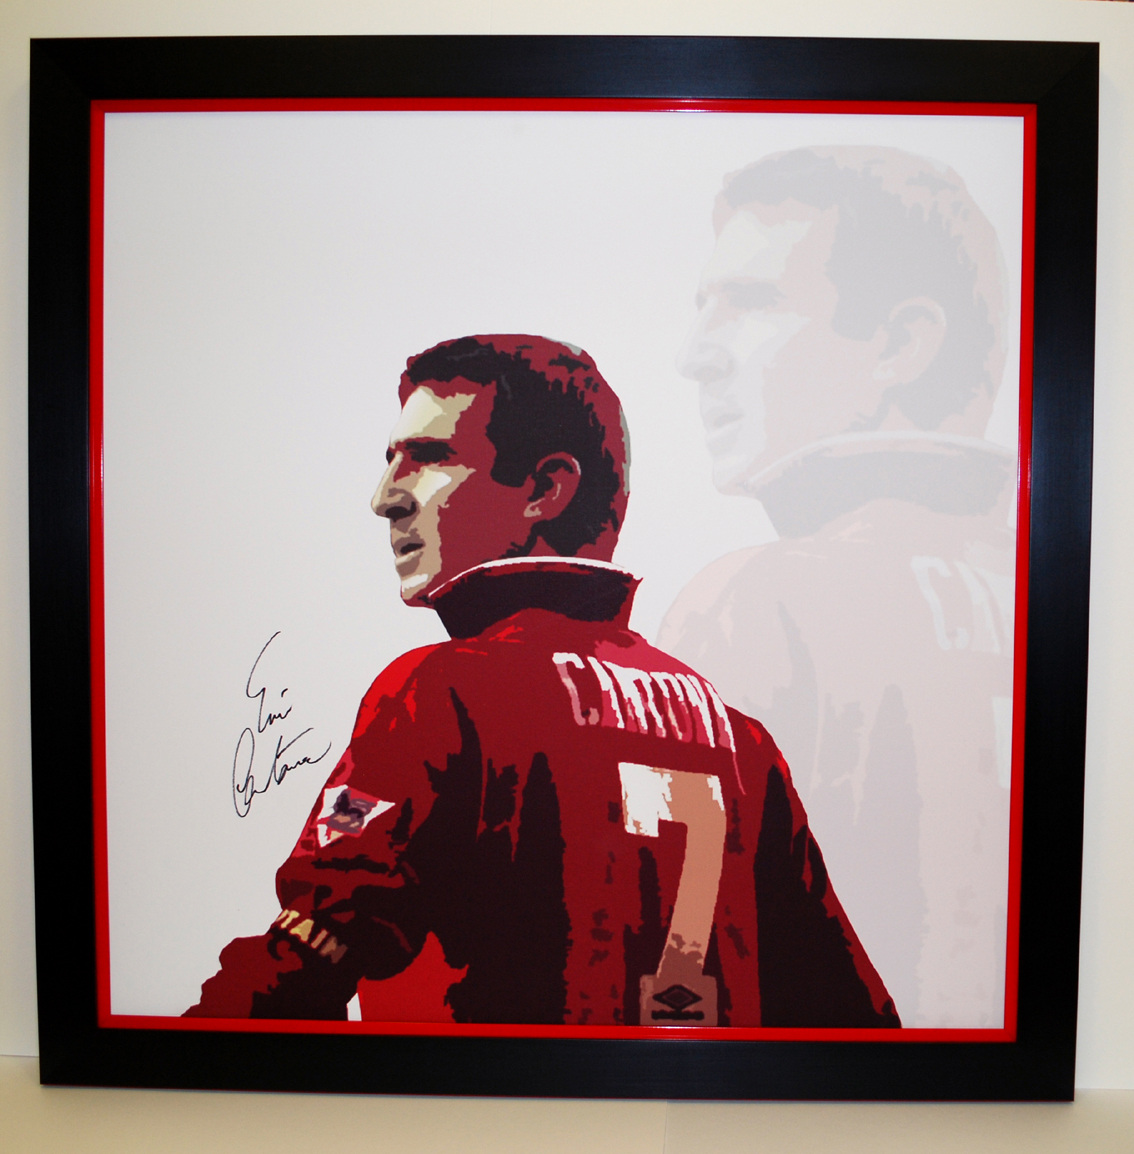 A large Eric Cantona personally signed canvas which we stretched and framed. We actually sell these in our gallery.